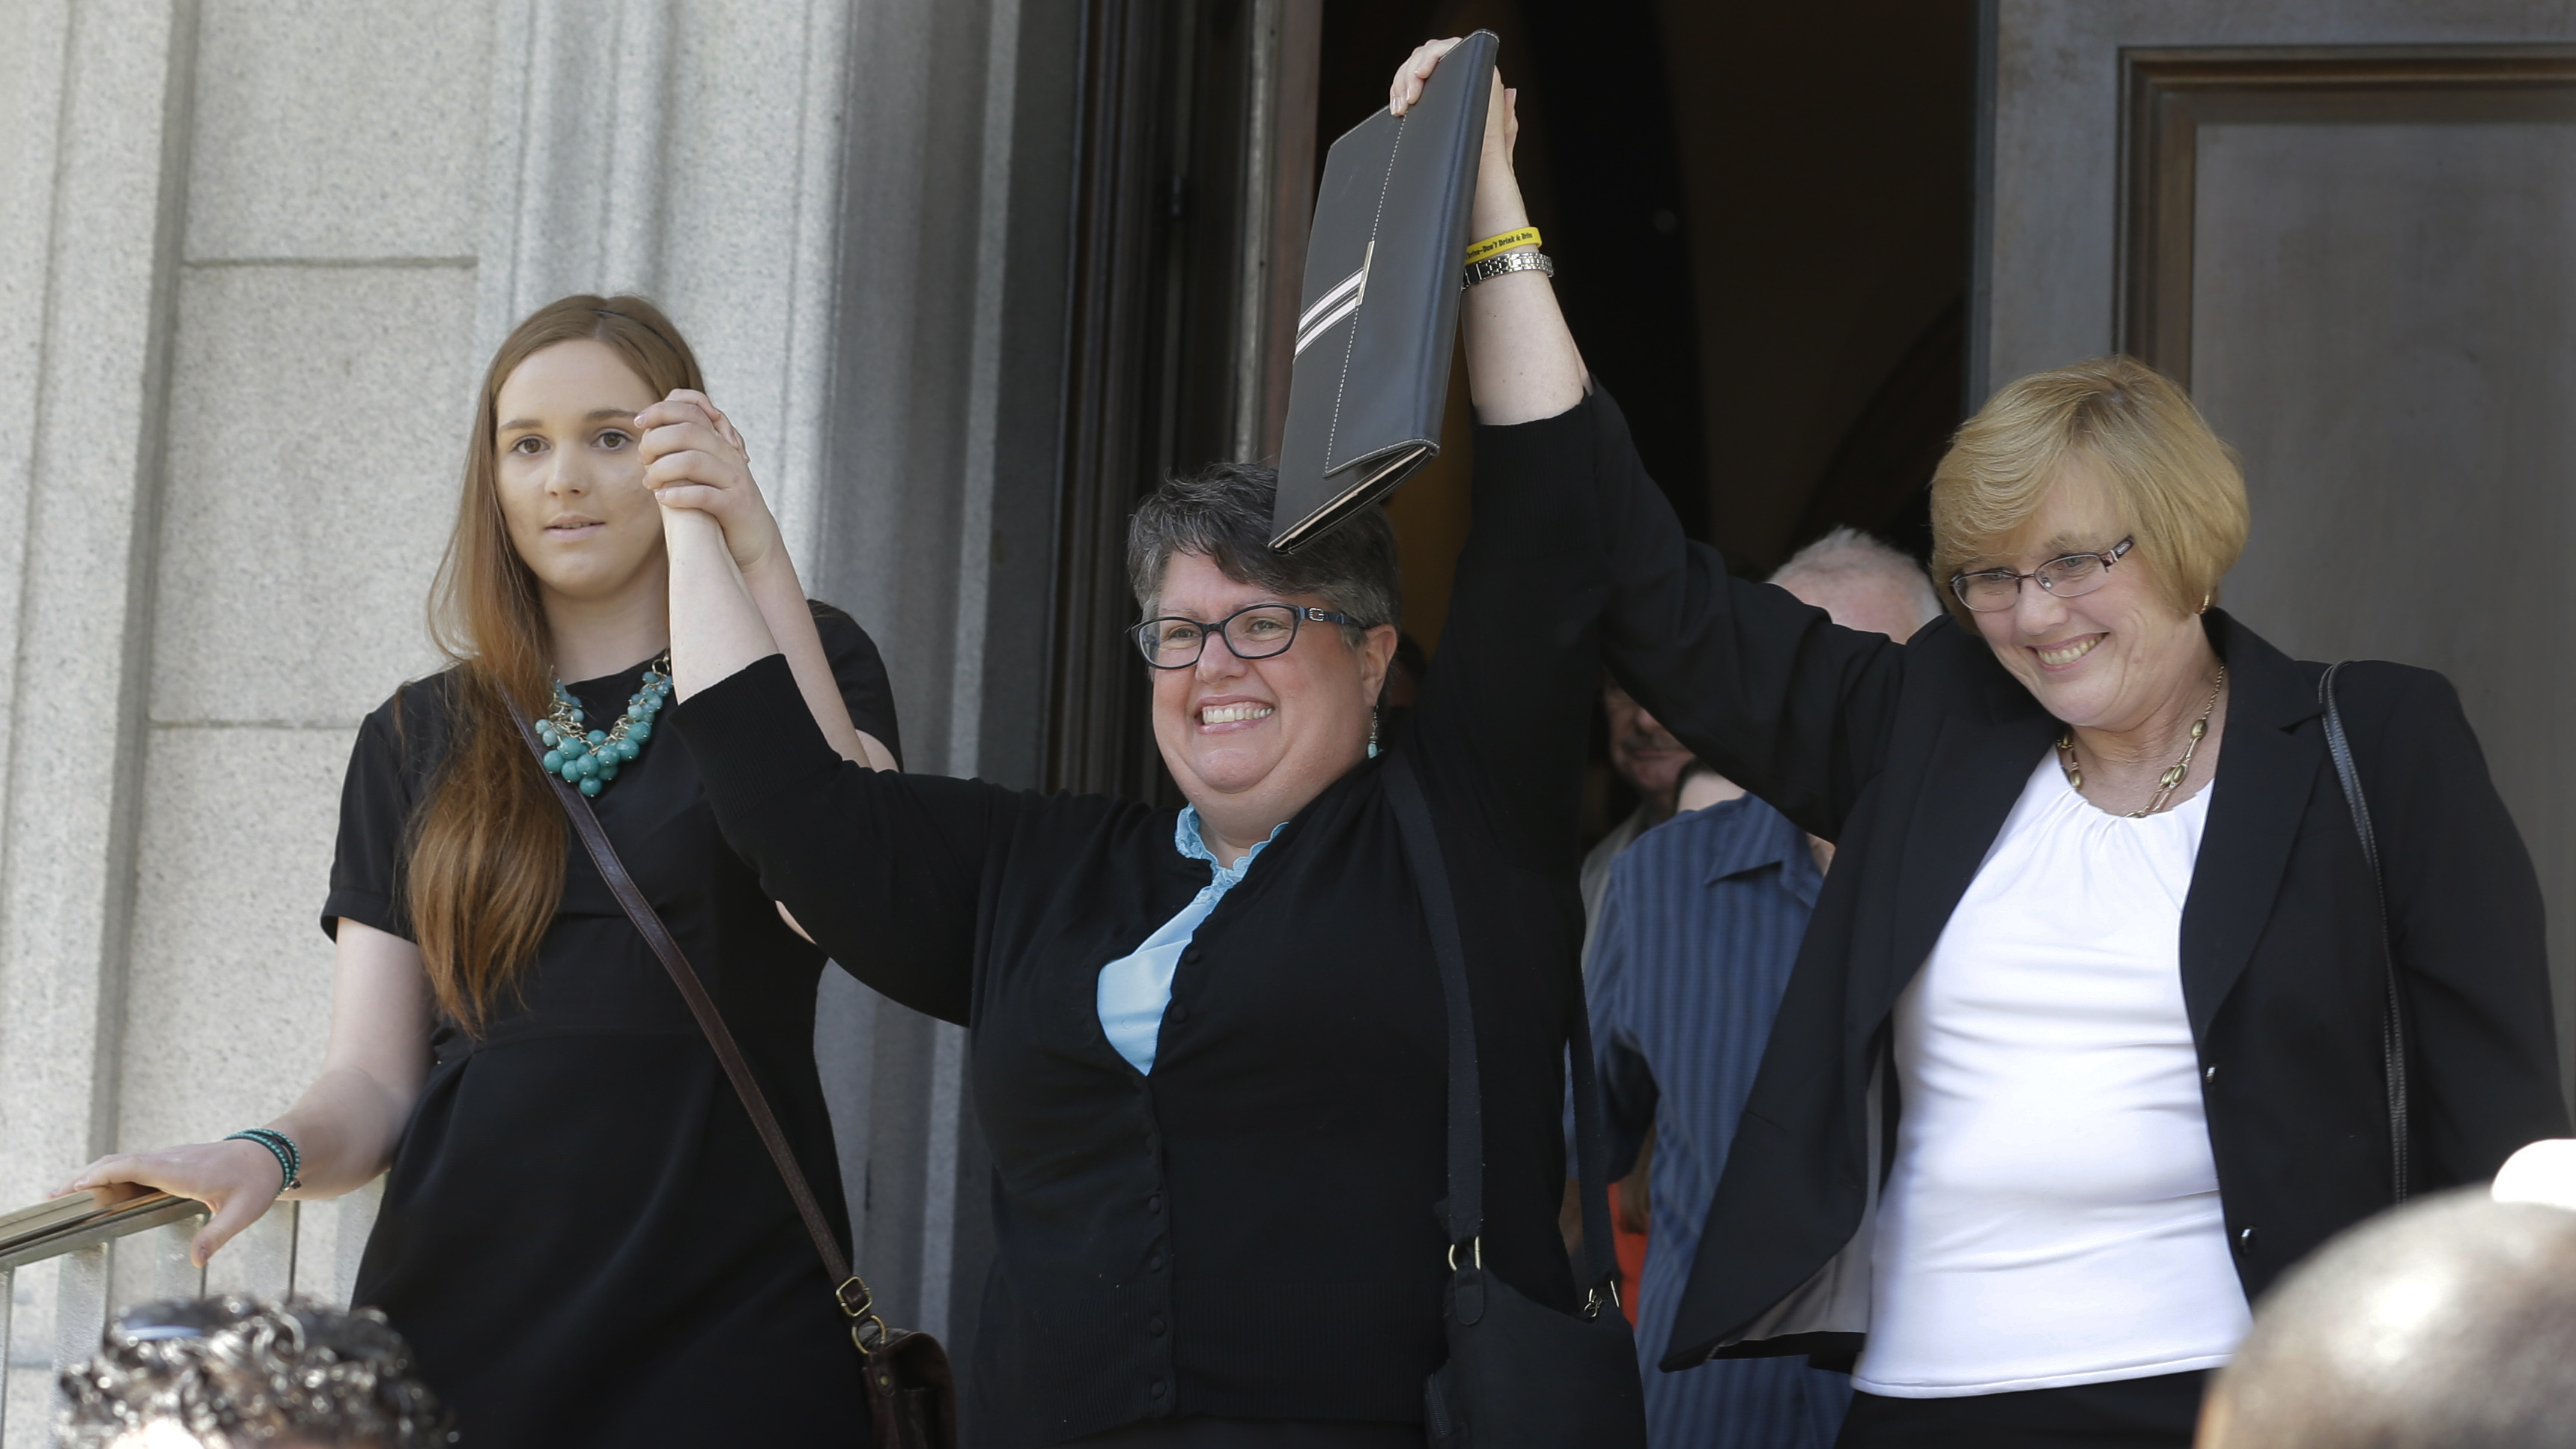 Plantiffs in the federal suit over Virginia's ban on gay marriage, Emily Schall-Townley (from left), Carol Schall and Mary Townley, raise their arms after a hearing on Virginia's same sex-marriage ban in Richmond, Va., in May. Today, the 4th U.S. Circuit Court of Appeals refused a motion to stay its decision that the ban isn't constitutional.